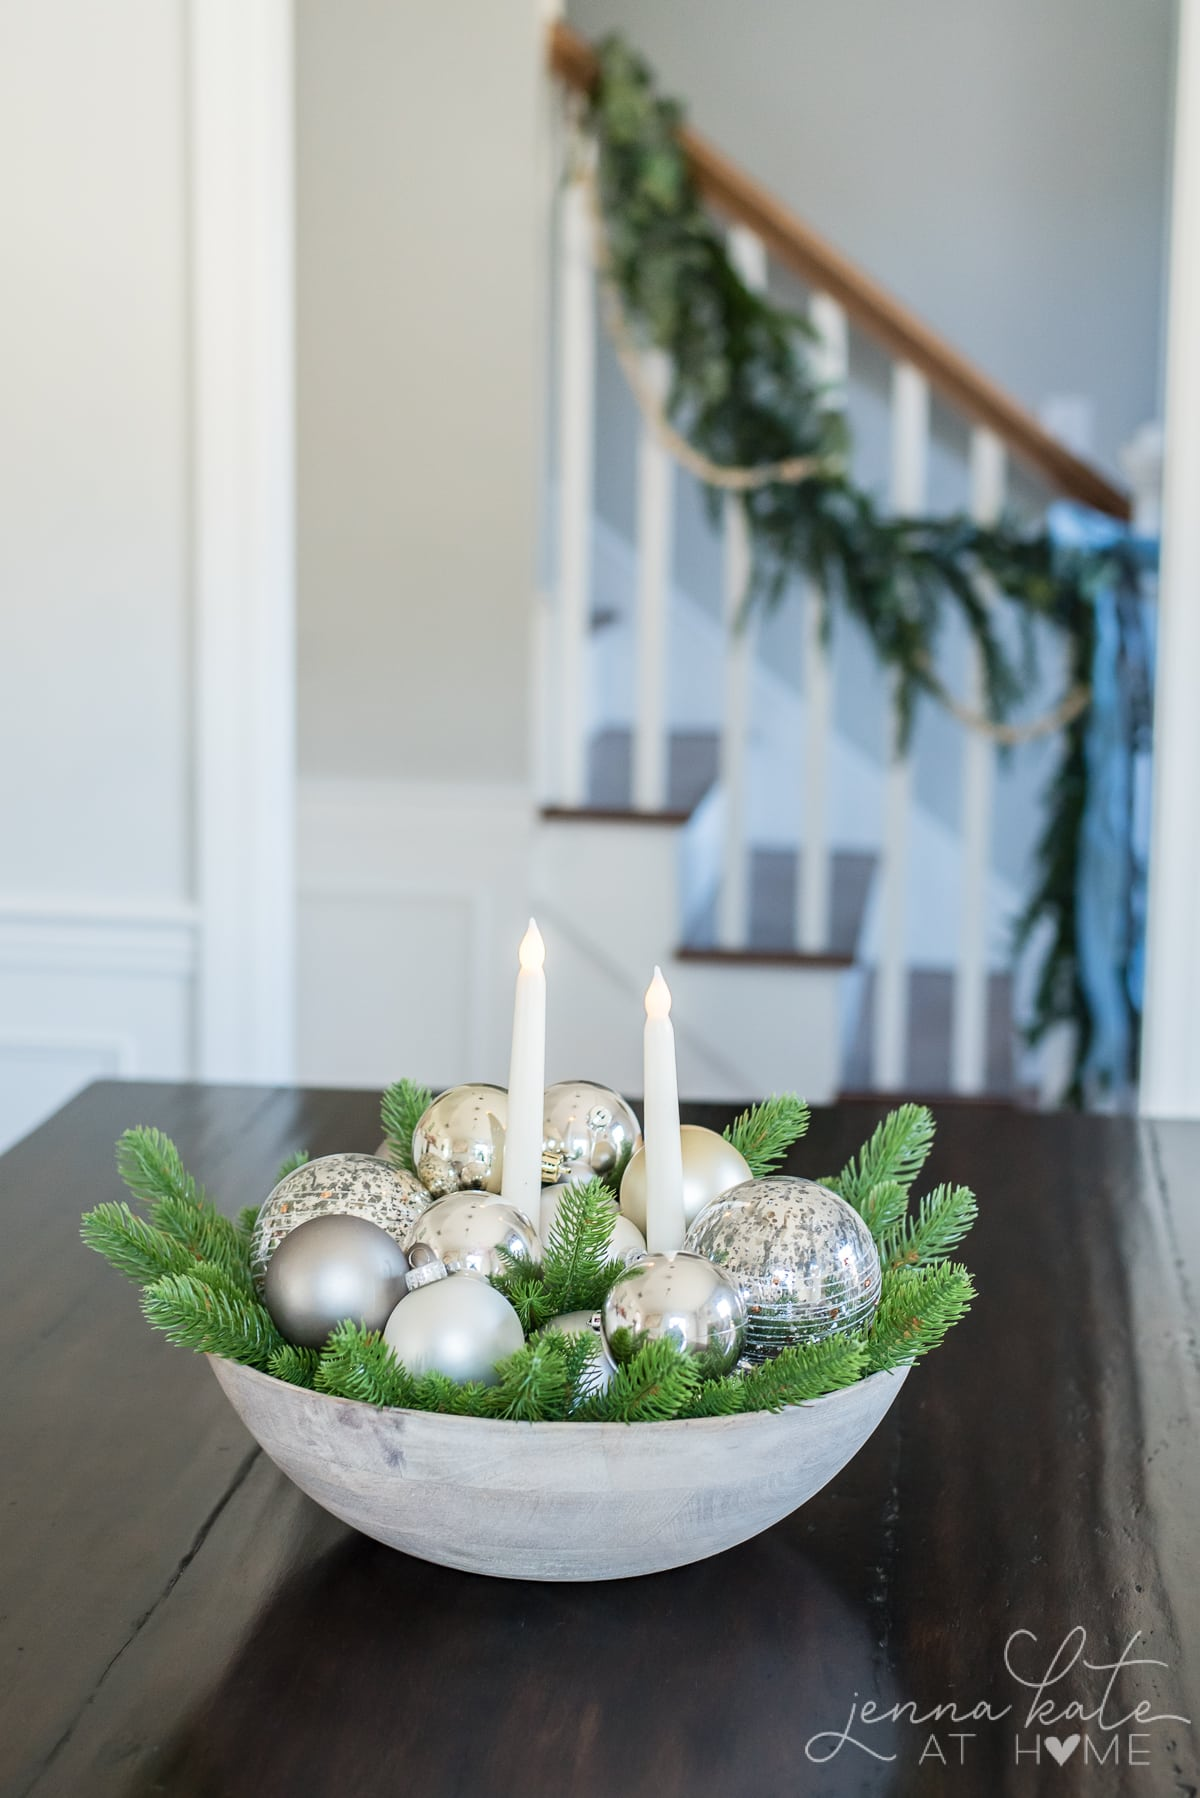 A bowl filled with greenery and ornament balls, with 2 battery operated candle in the middle